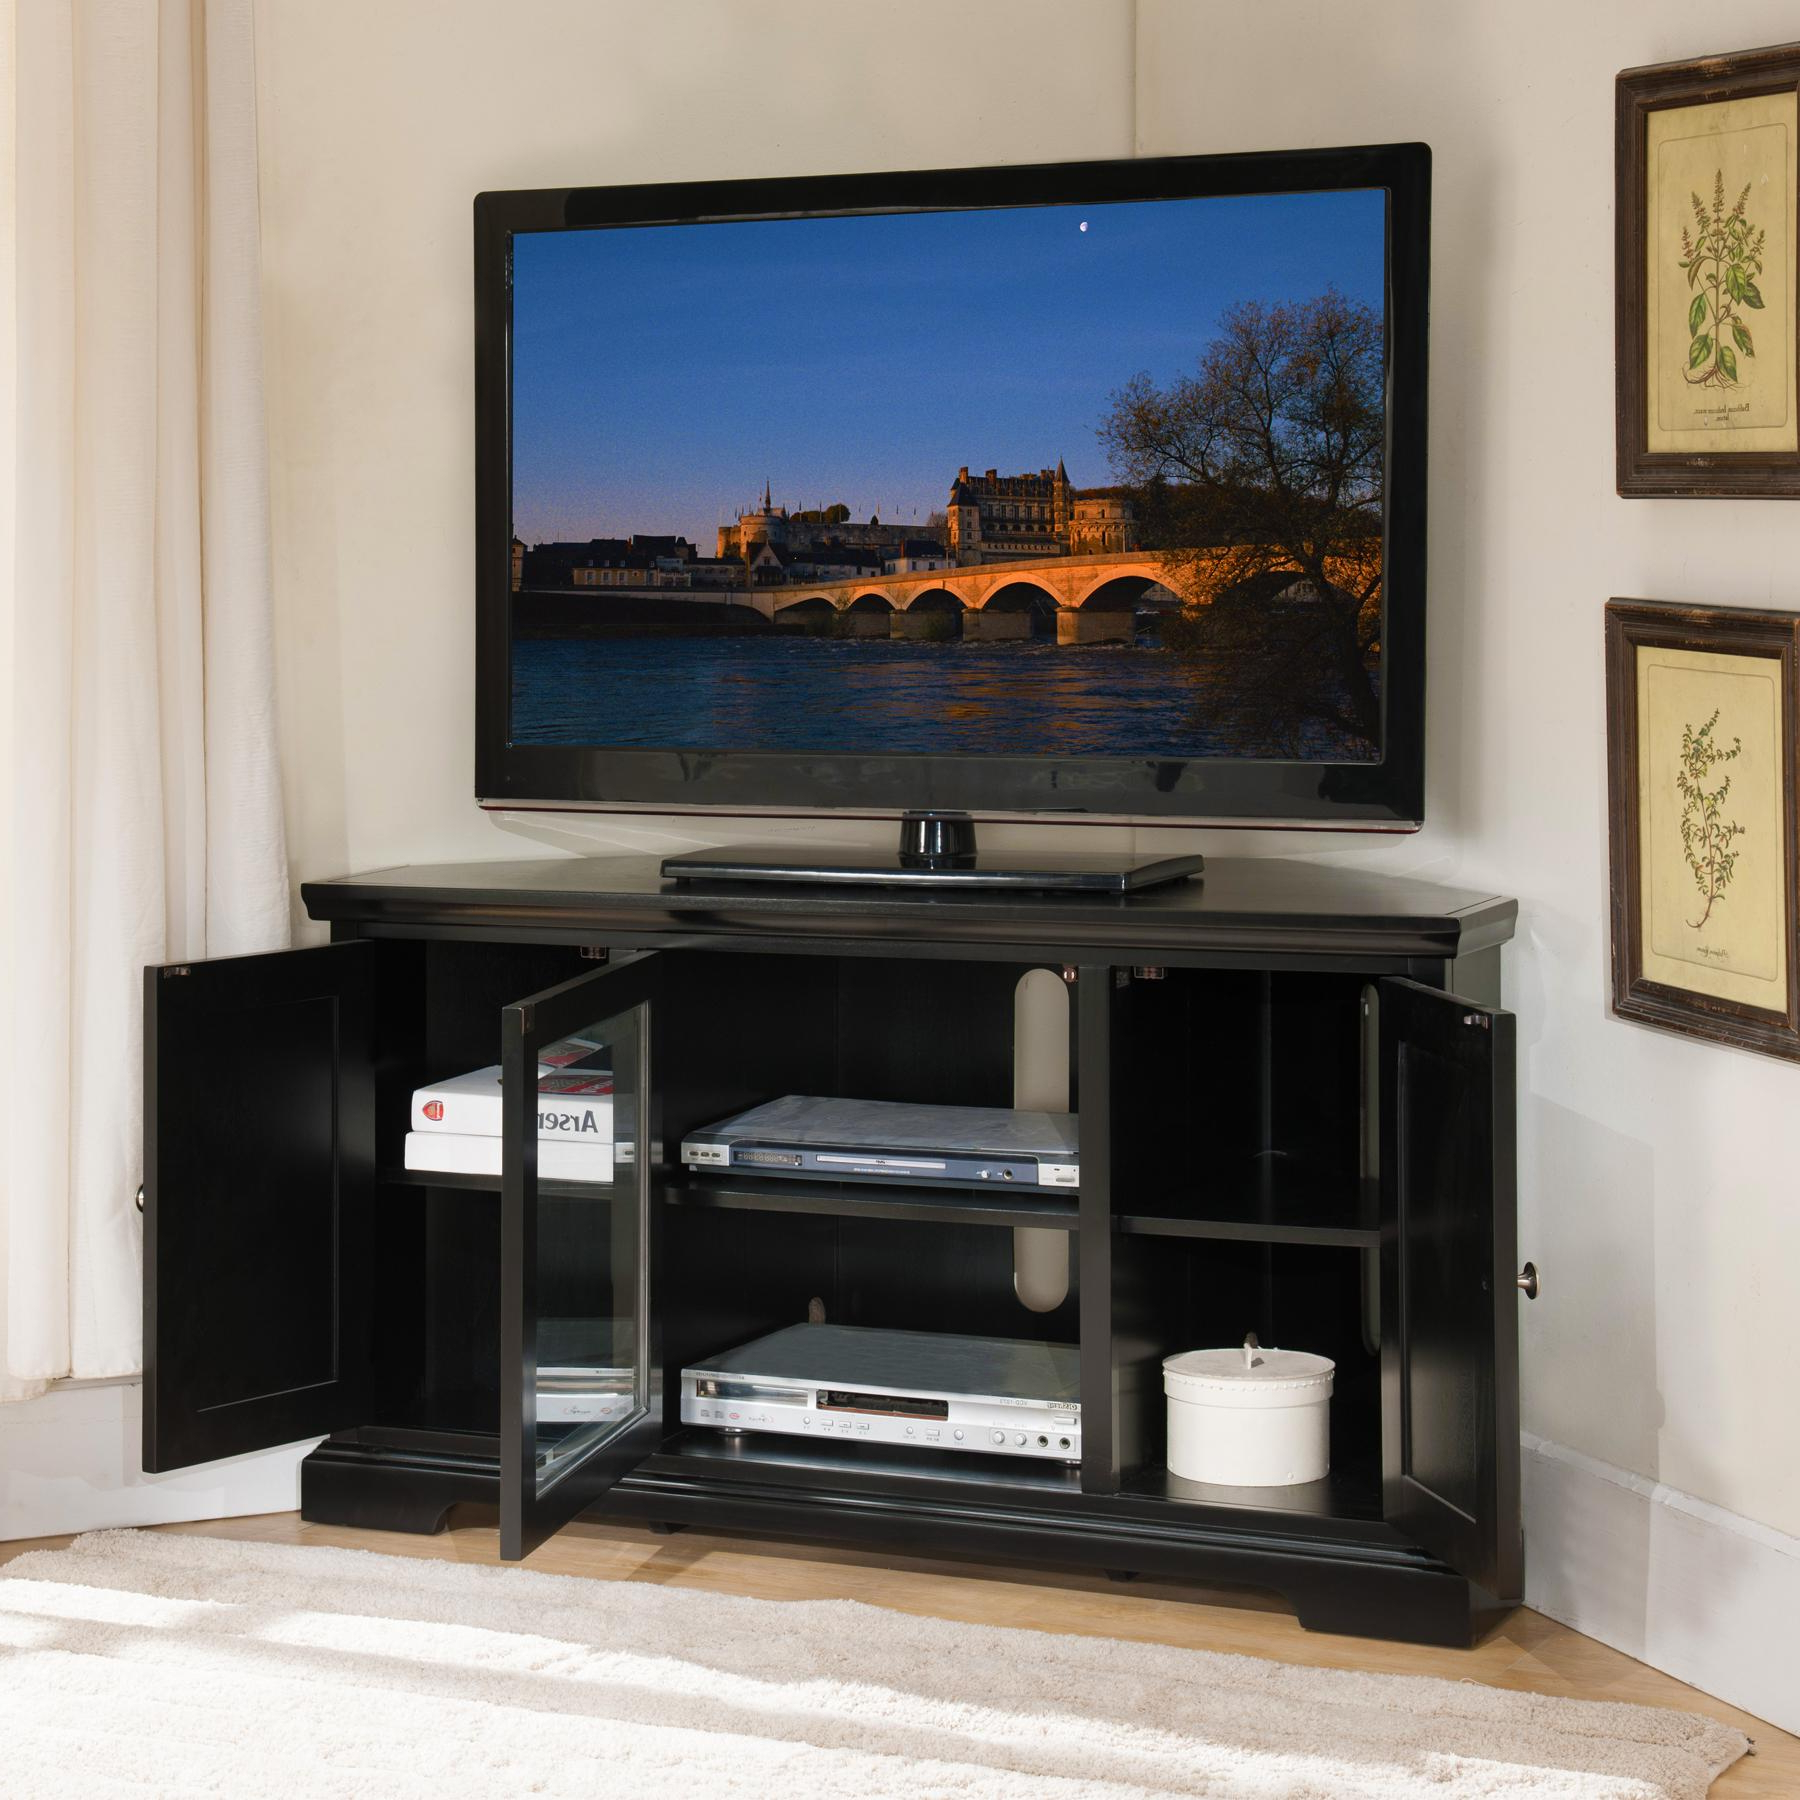 Tv Stands Corner Units For Fashionable Wall Studio Hidden Furniture Unit Designs Freedom Target Cabinets (View 14 of 20)